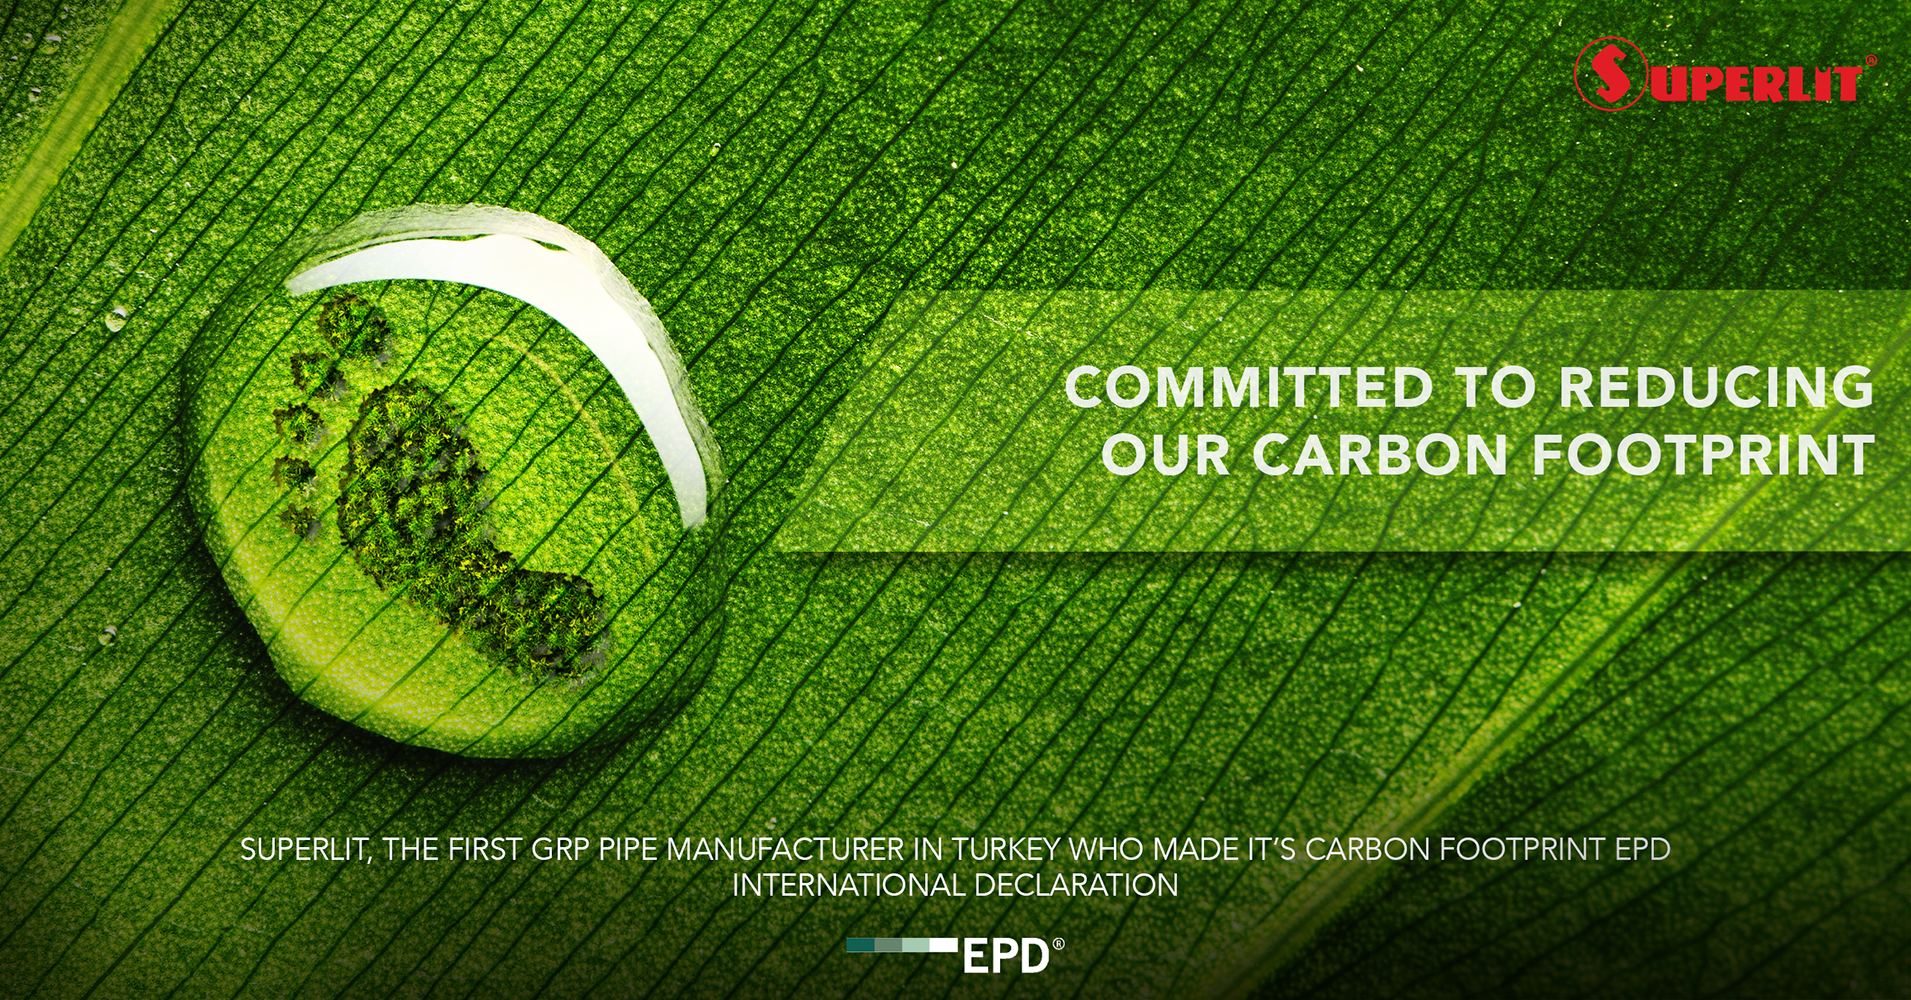 Superlit-carbon-footprint-epd-document